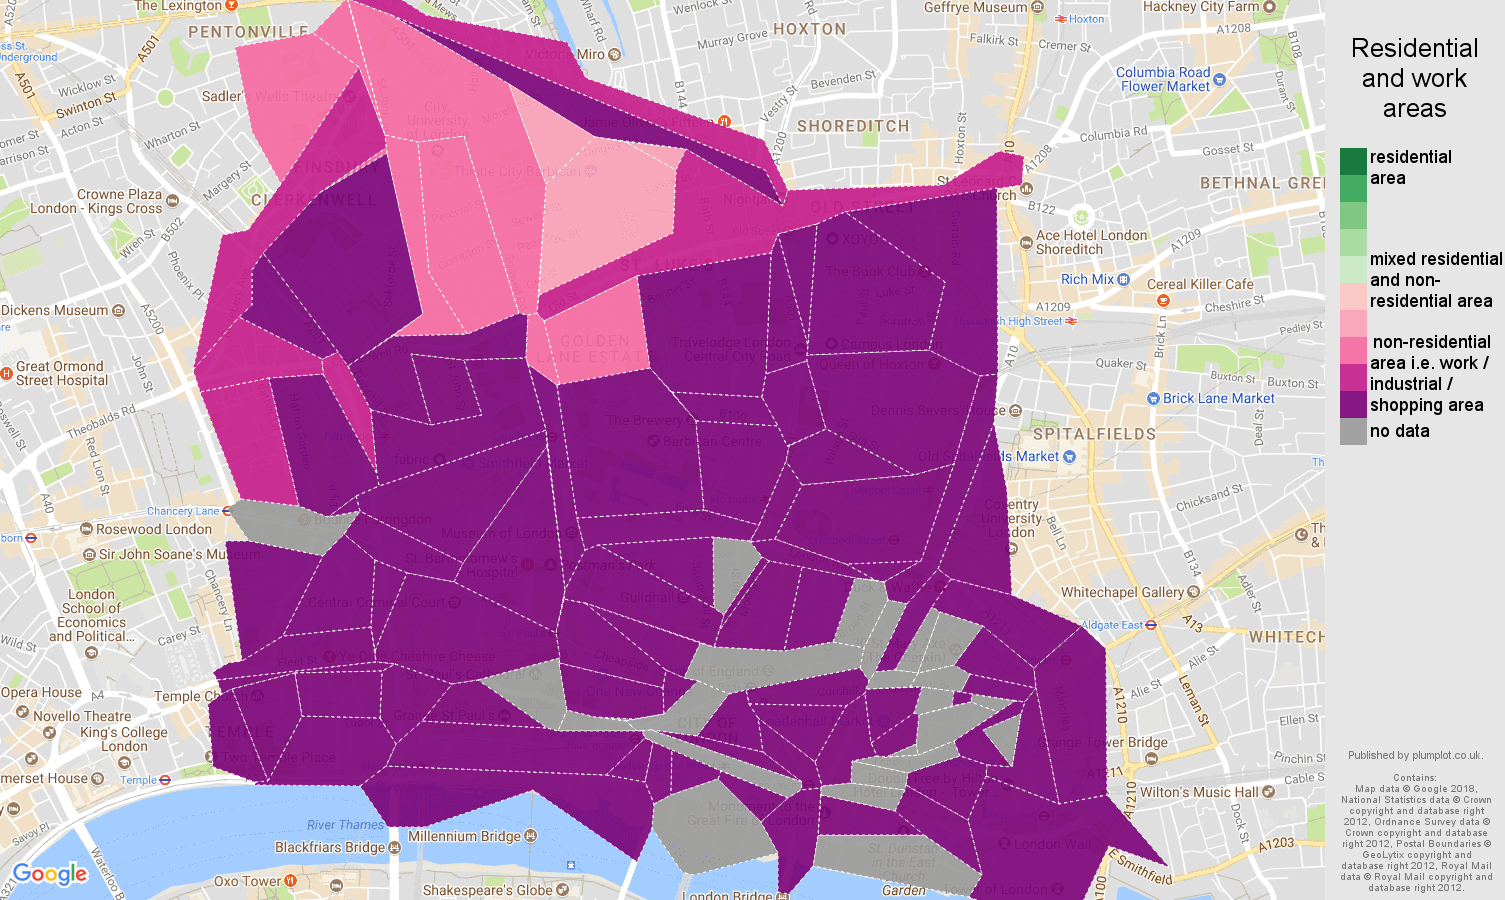 East Central London residential areas map